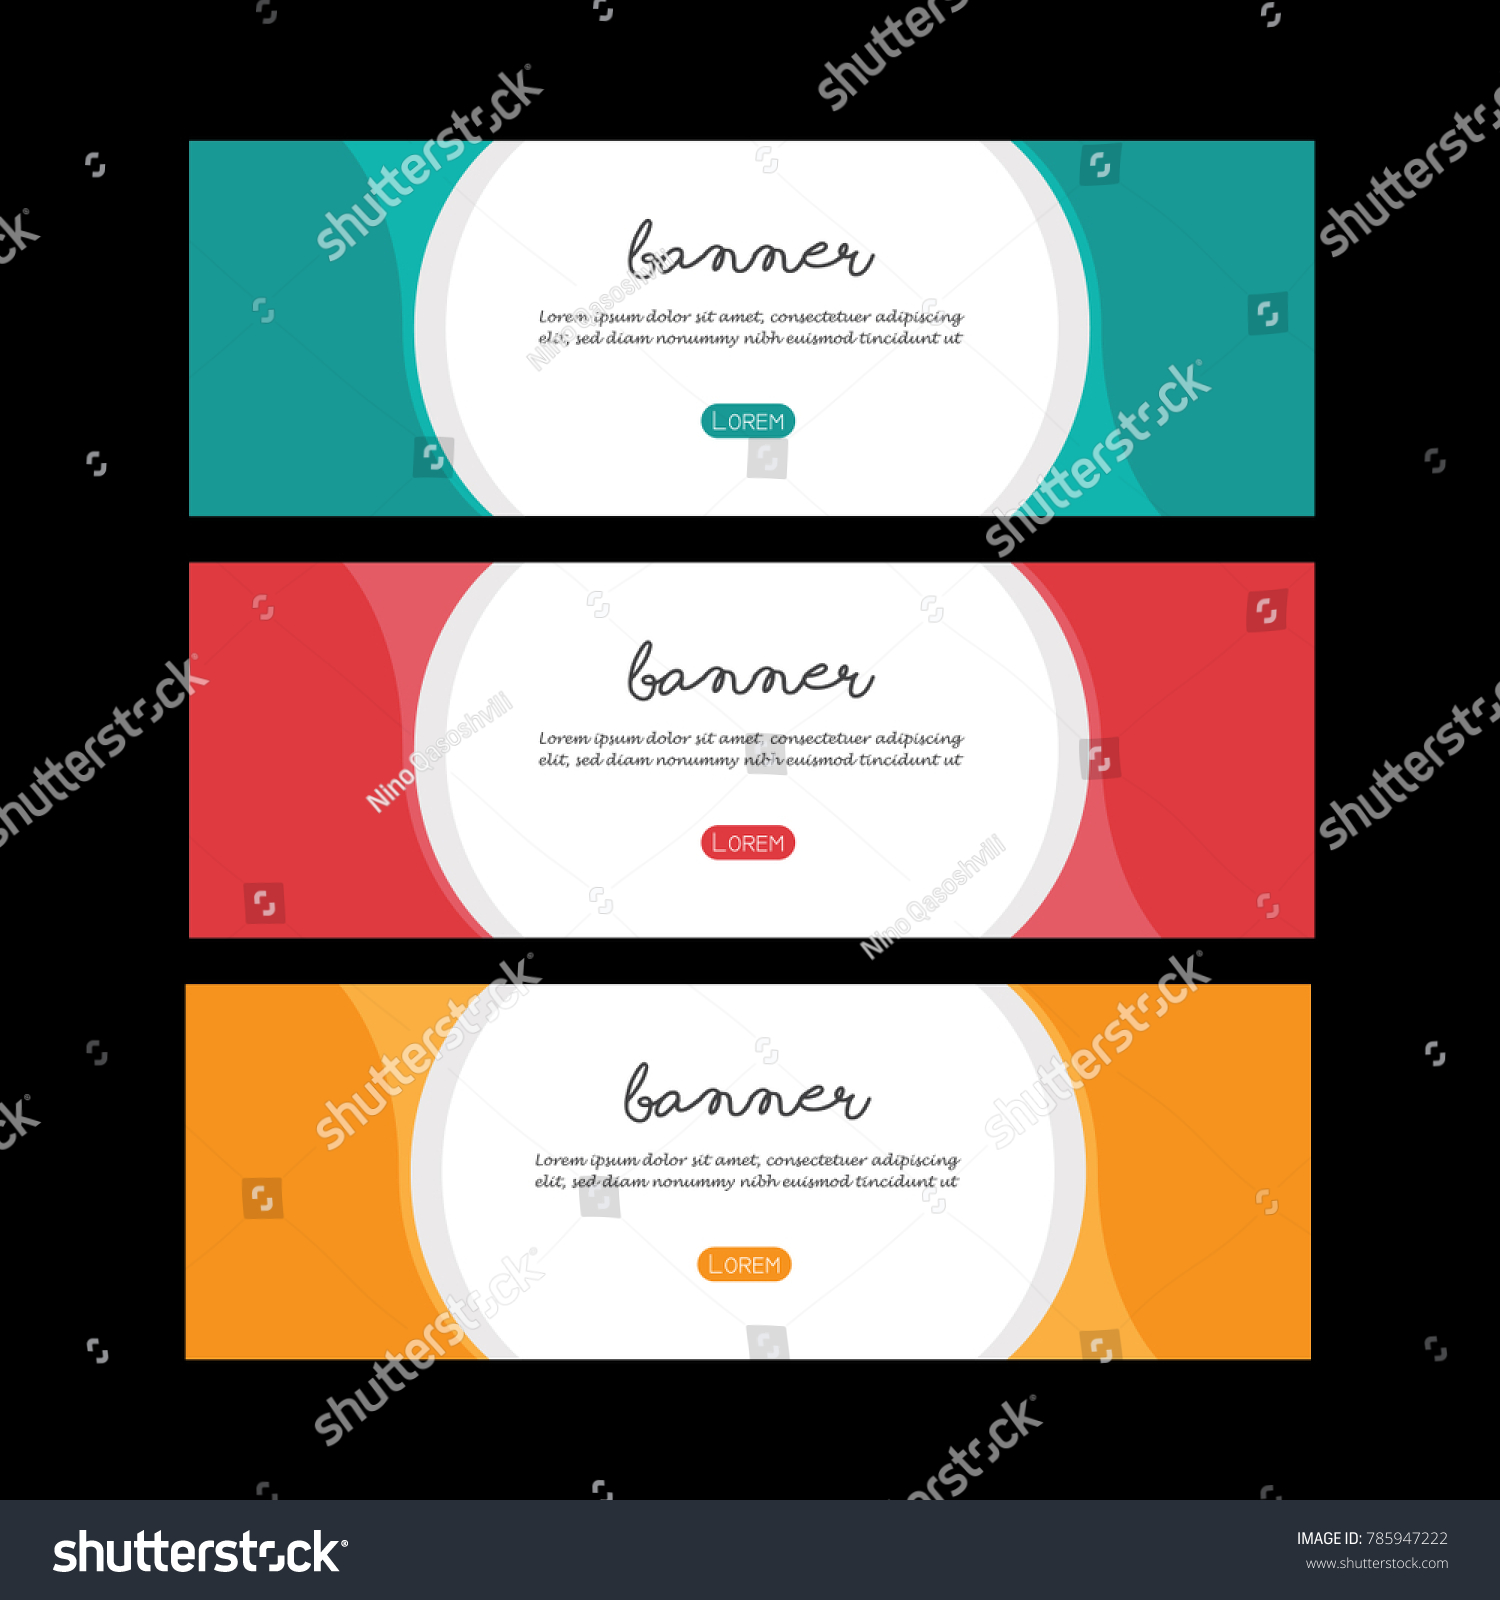 colorful banner set design simple poster stock vector 785947222